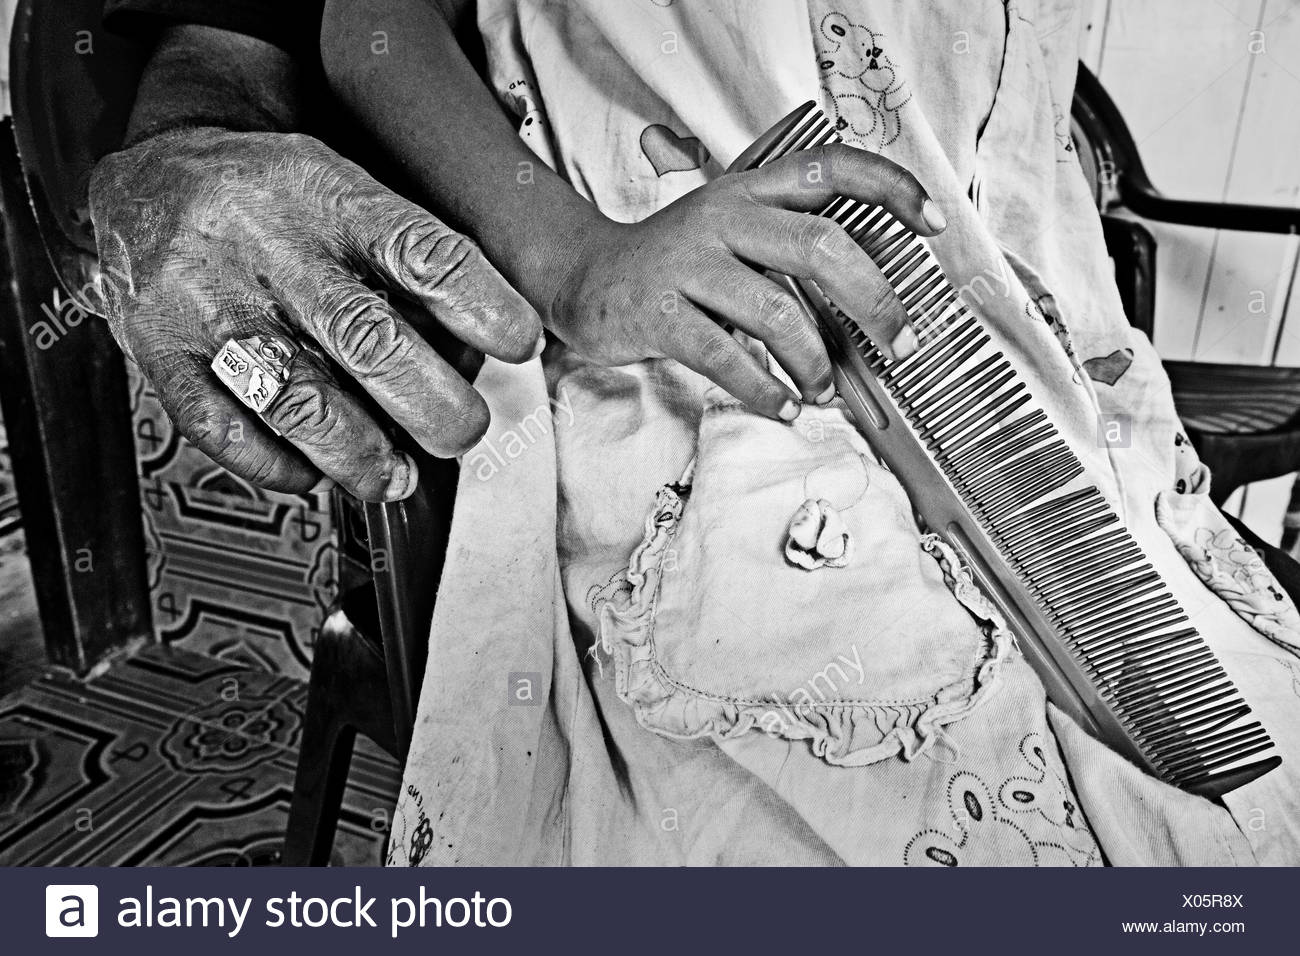 A young child held by her grandfather who is missing fingers from illegal bomb fishing. - Stock Image